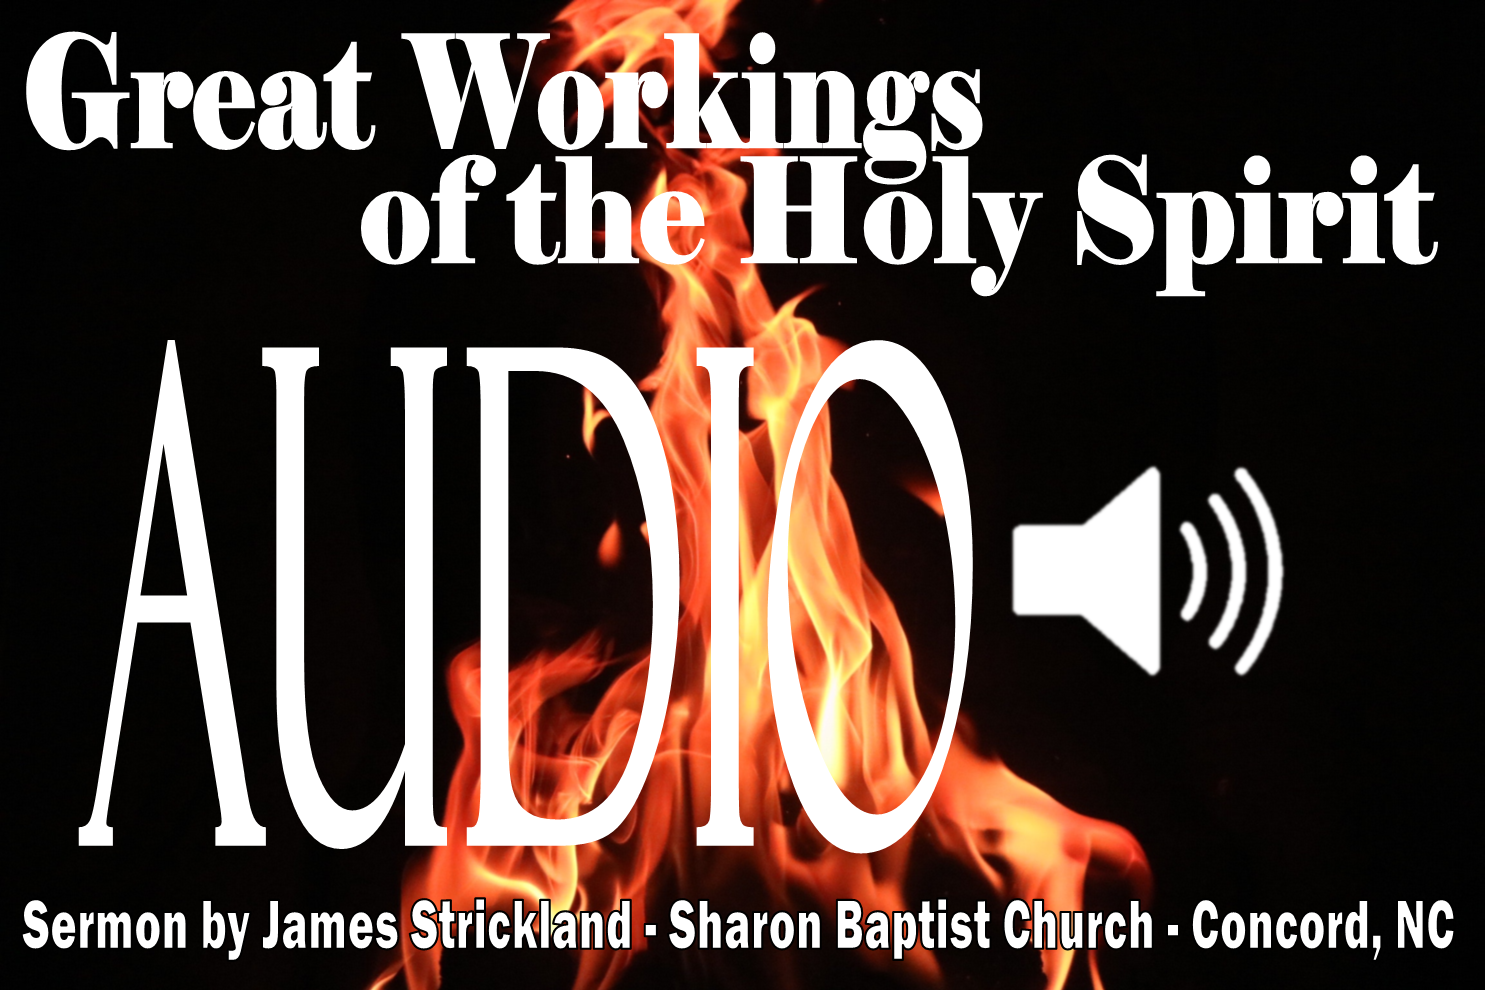 Great Workings of the Holy Spirit Sermon by James Strickland